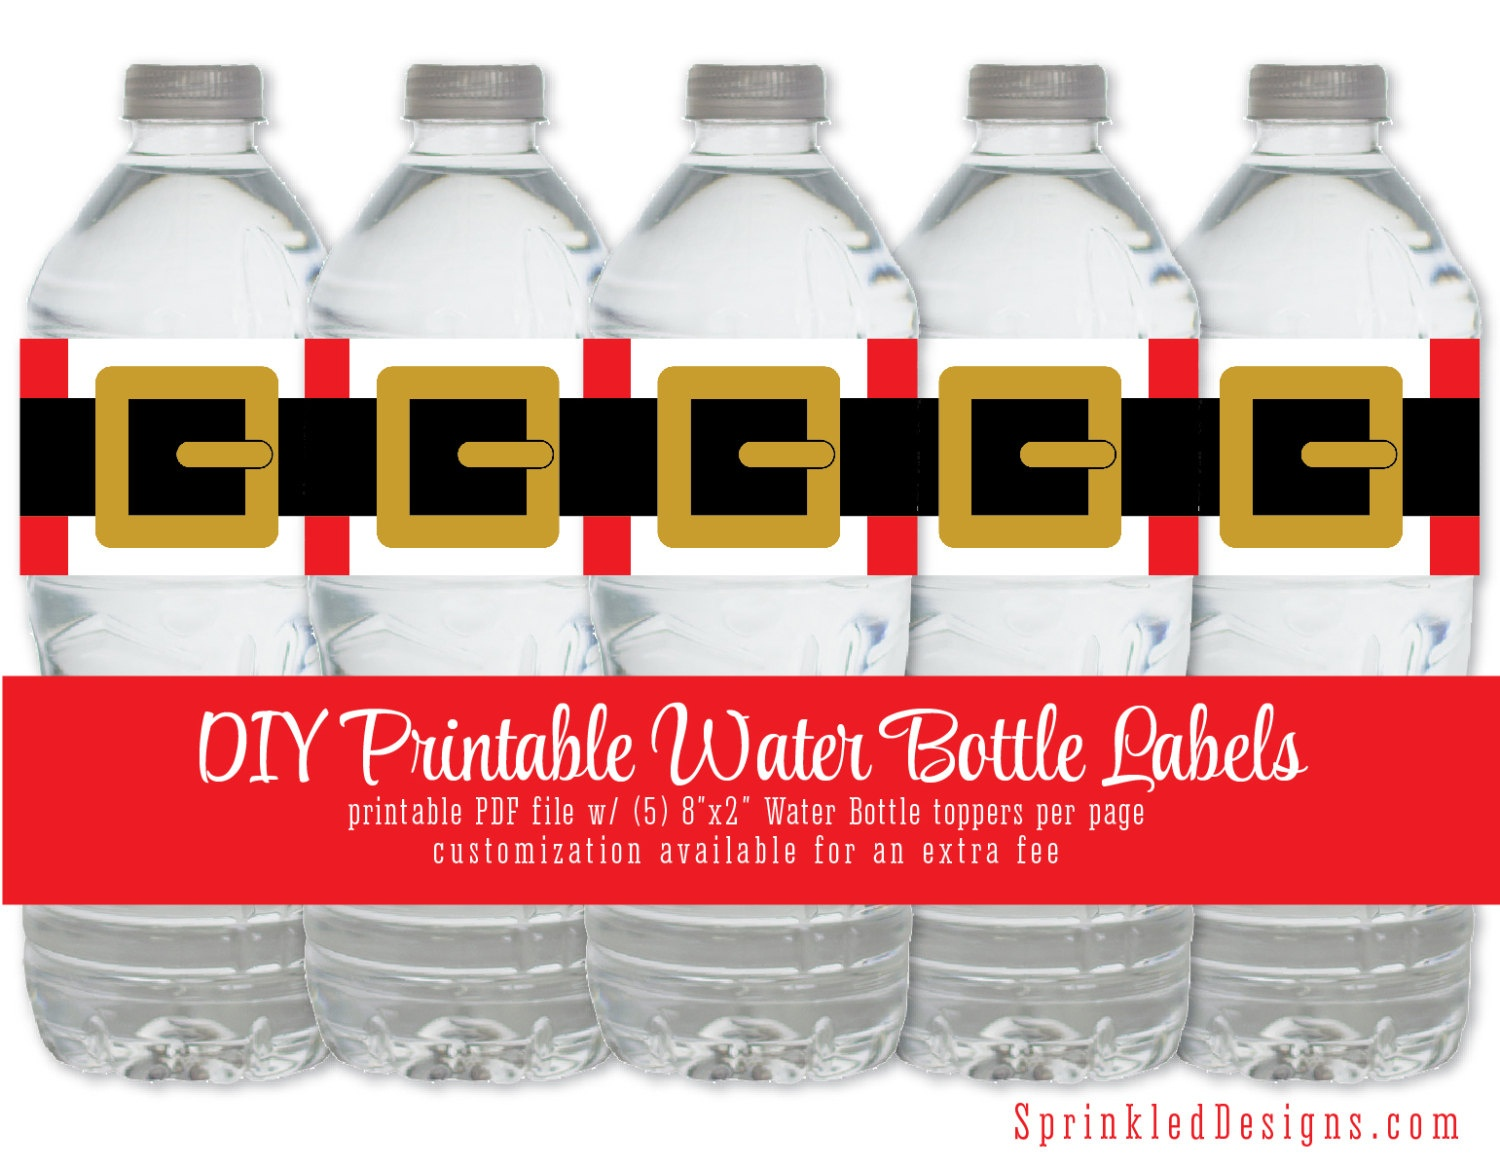 Santa Printable Water Bottle Labels - Funny Drink Wrap Wrapper - Christmas Water Bottle Labels Free Printable